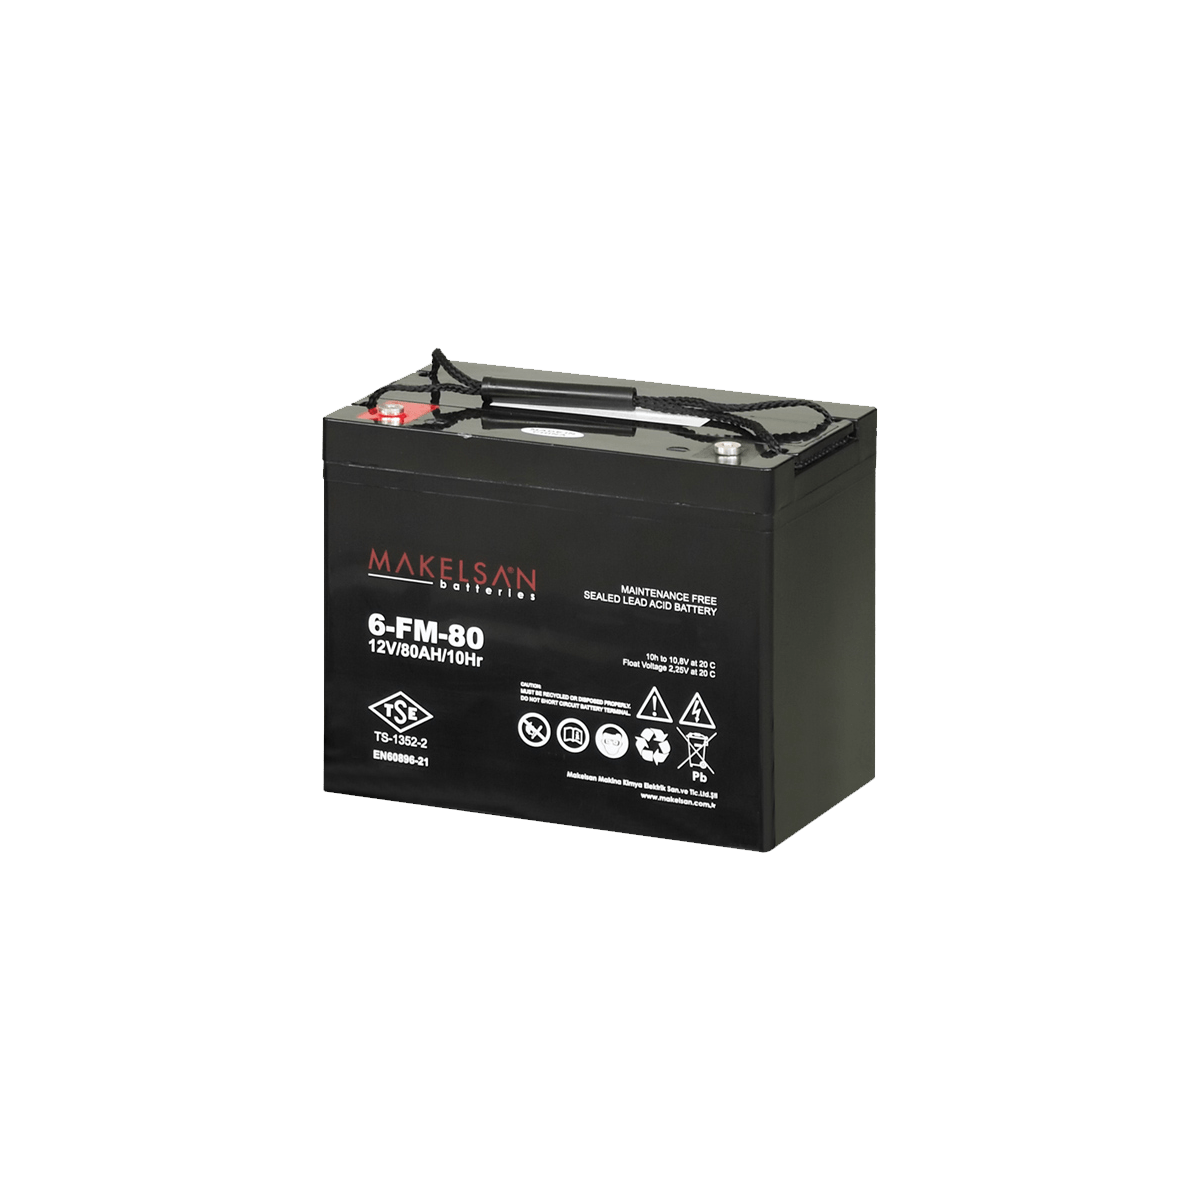 باتری یو پی اس ۶-FM SERIES 12V 4.5Ah-200Ah AGM VRLA BATTERY